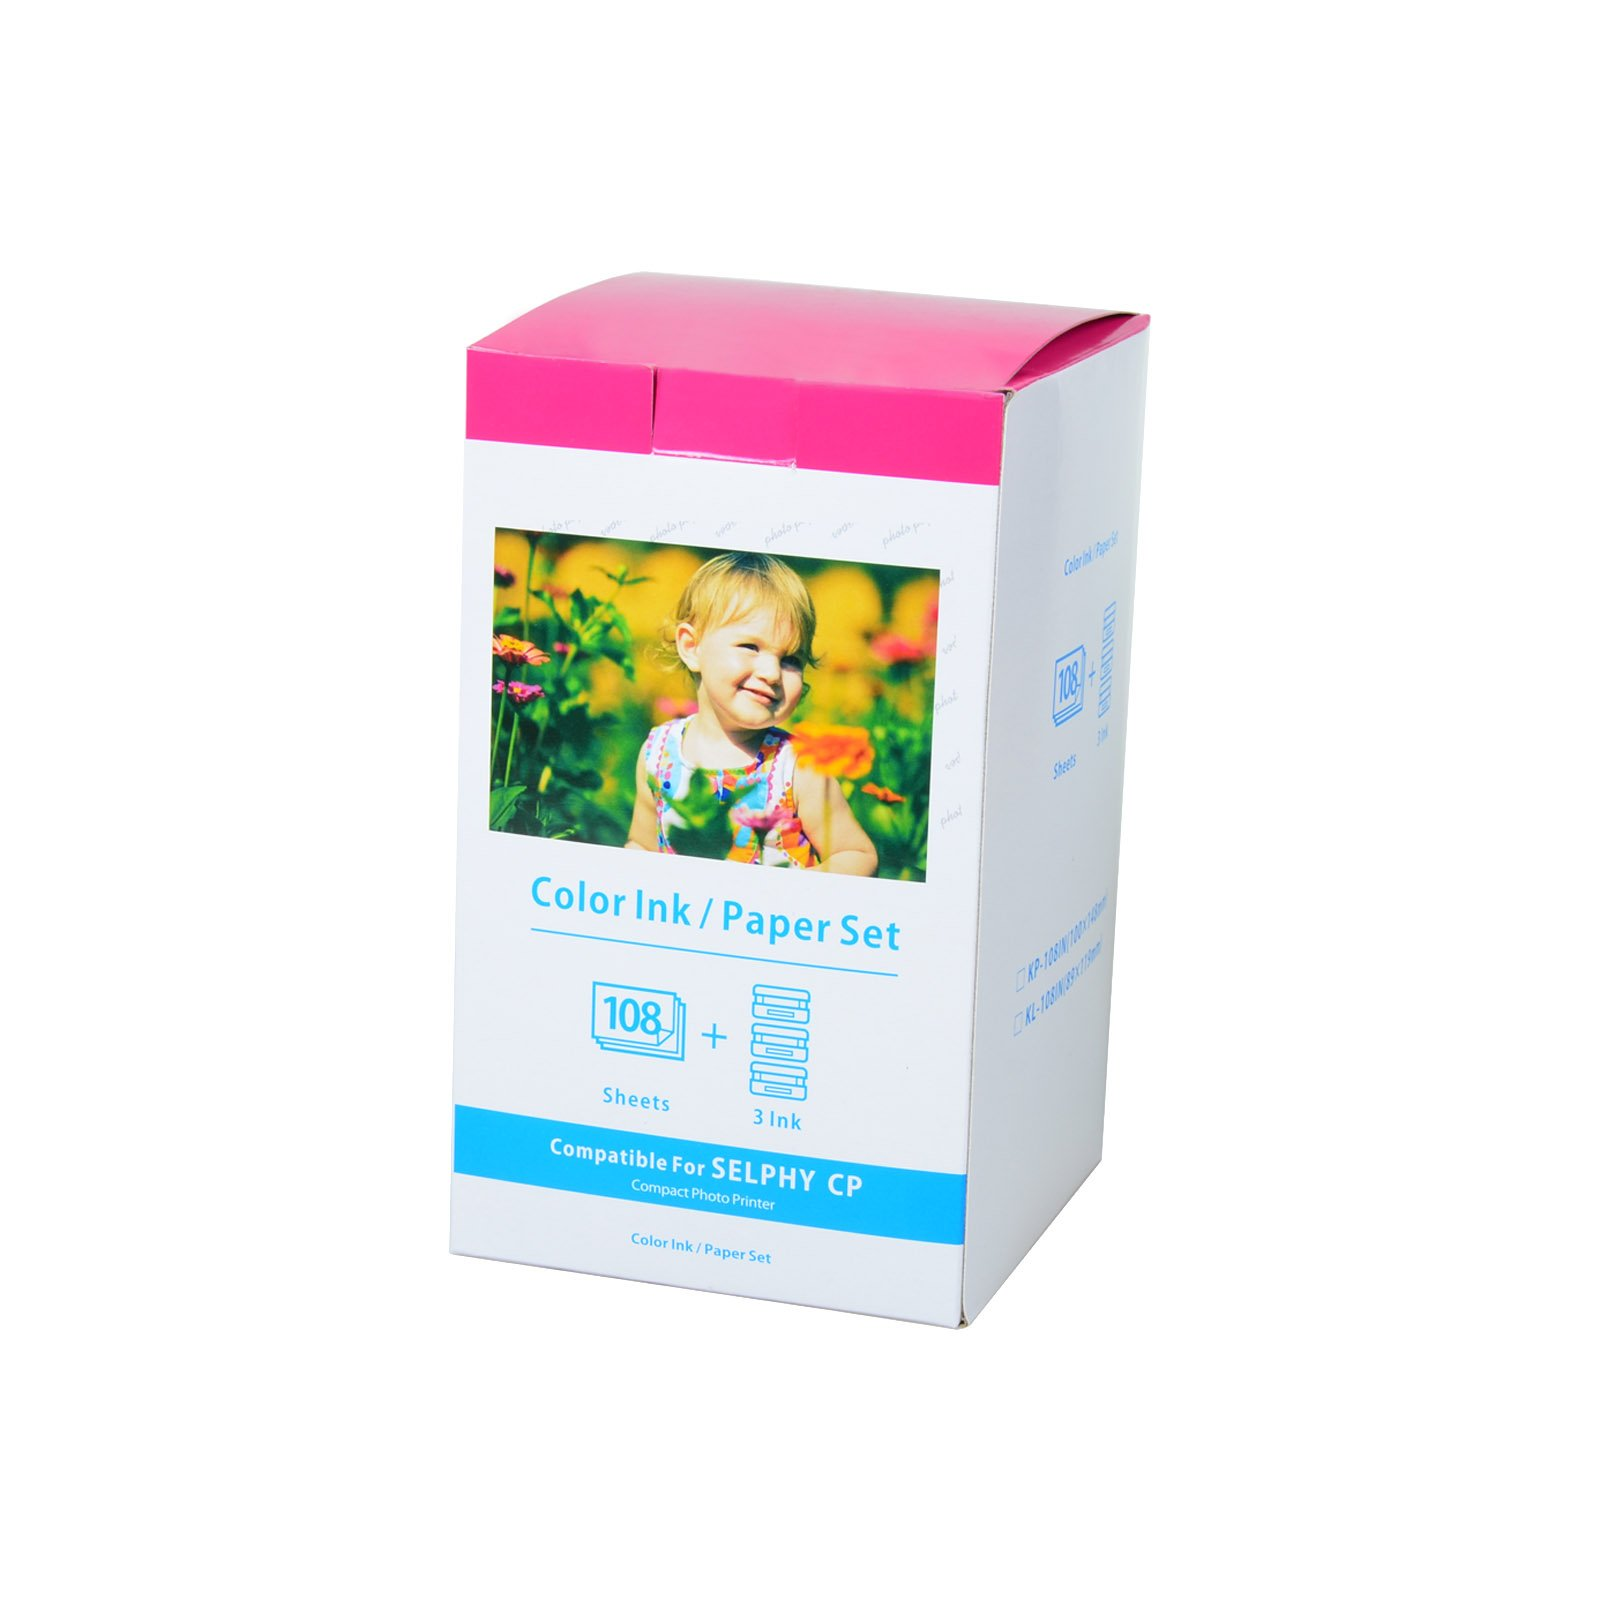 KCMYTONER 1 Pack Compatible Canon KP-108IN KP108 3 Color Ink Cartridges and 108 Sheets Paper Set 4''x6'' 100 x148mm for Selphy CP1300 CP1200 CP910 CP900 CP760 CP770 CP780 CP800 Wireless Compact Photo